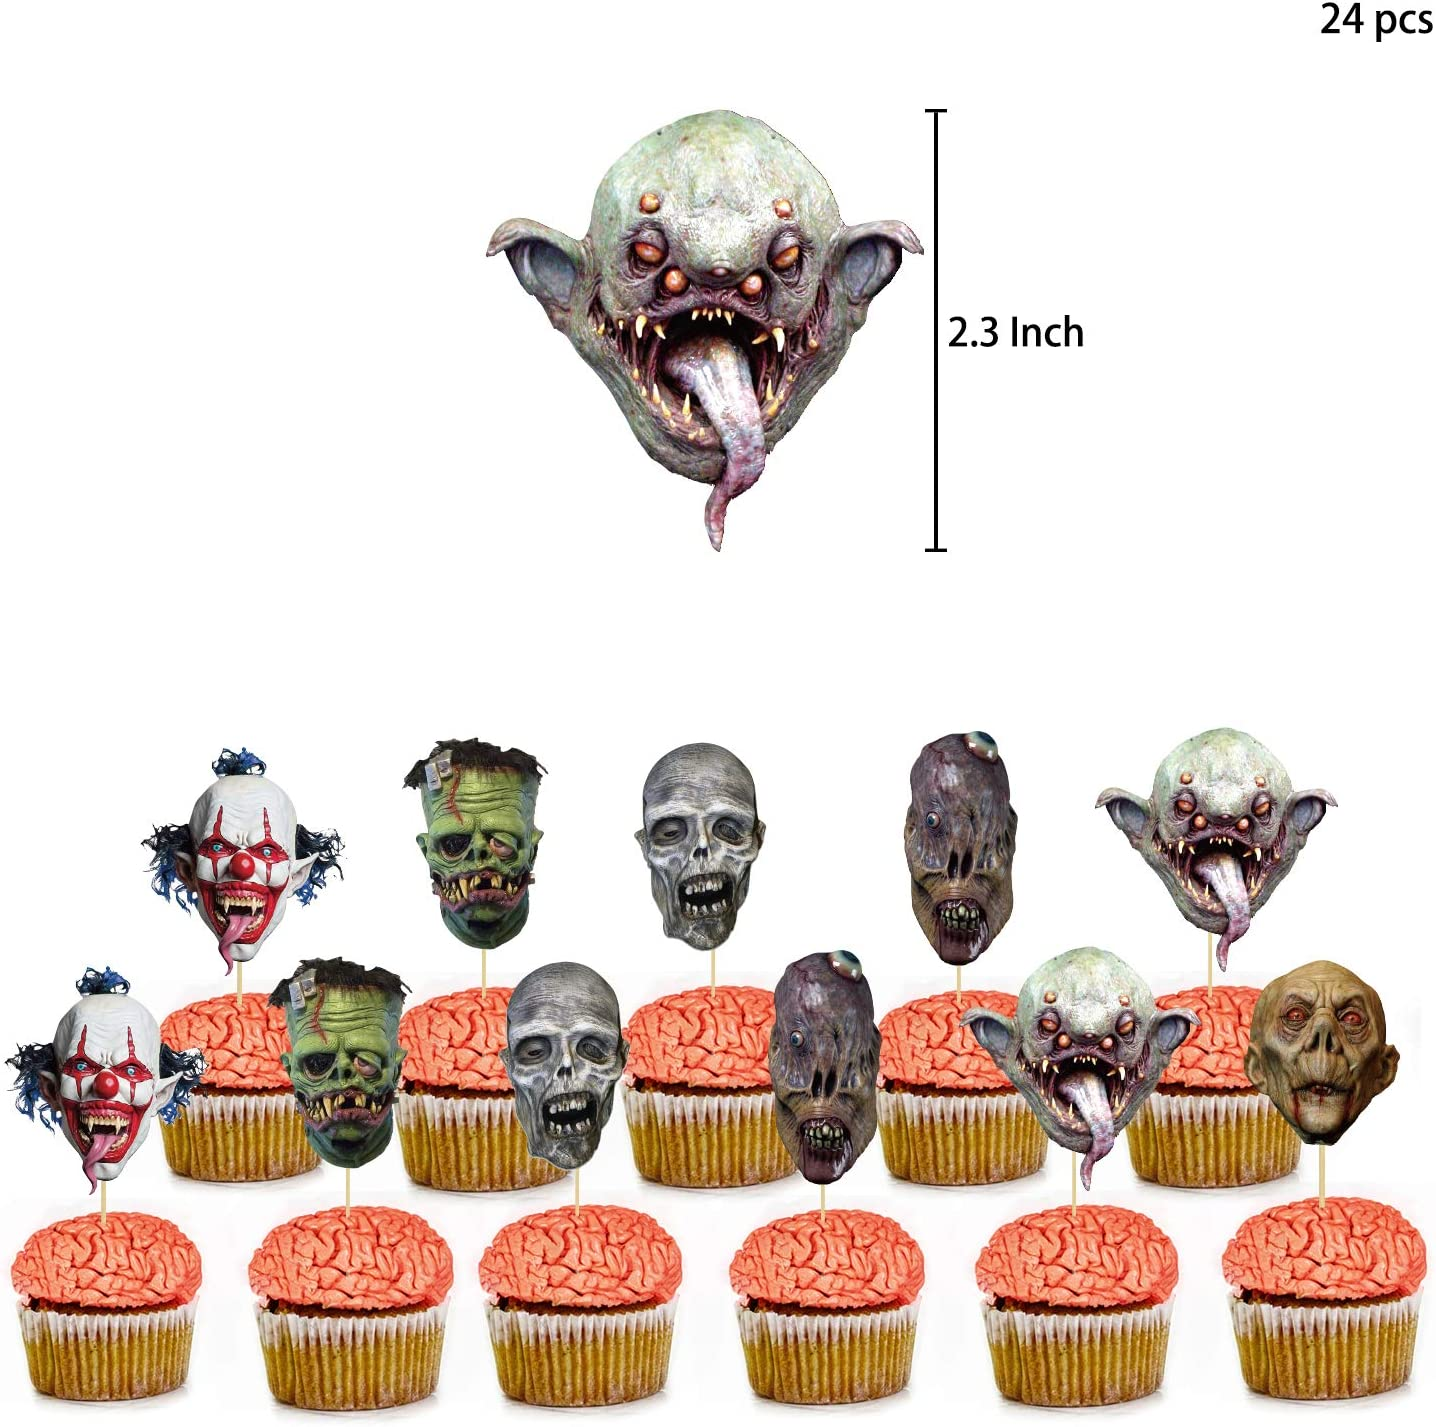 Halloween banners cake and cupcake toppers for Halloween horror party decorations balloon sets 2020 Halloween decoration set 43 pieces of Halloween party decorations